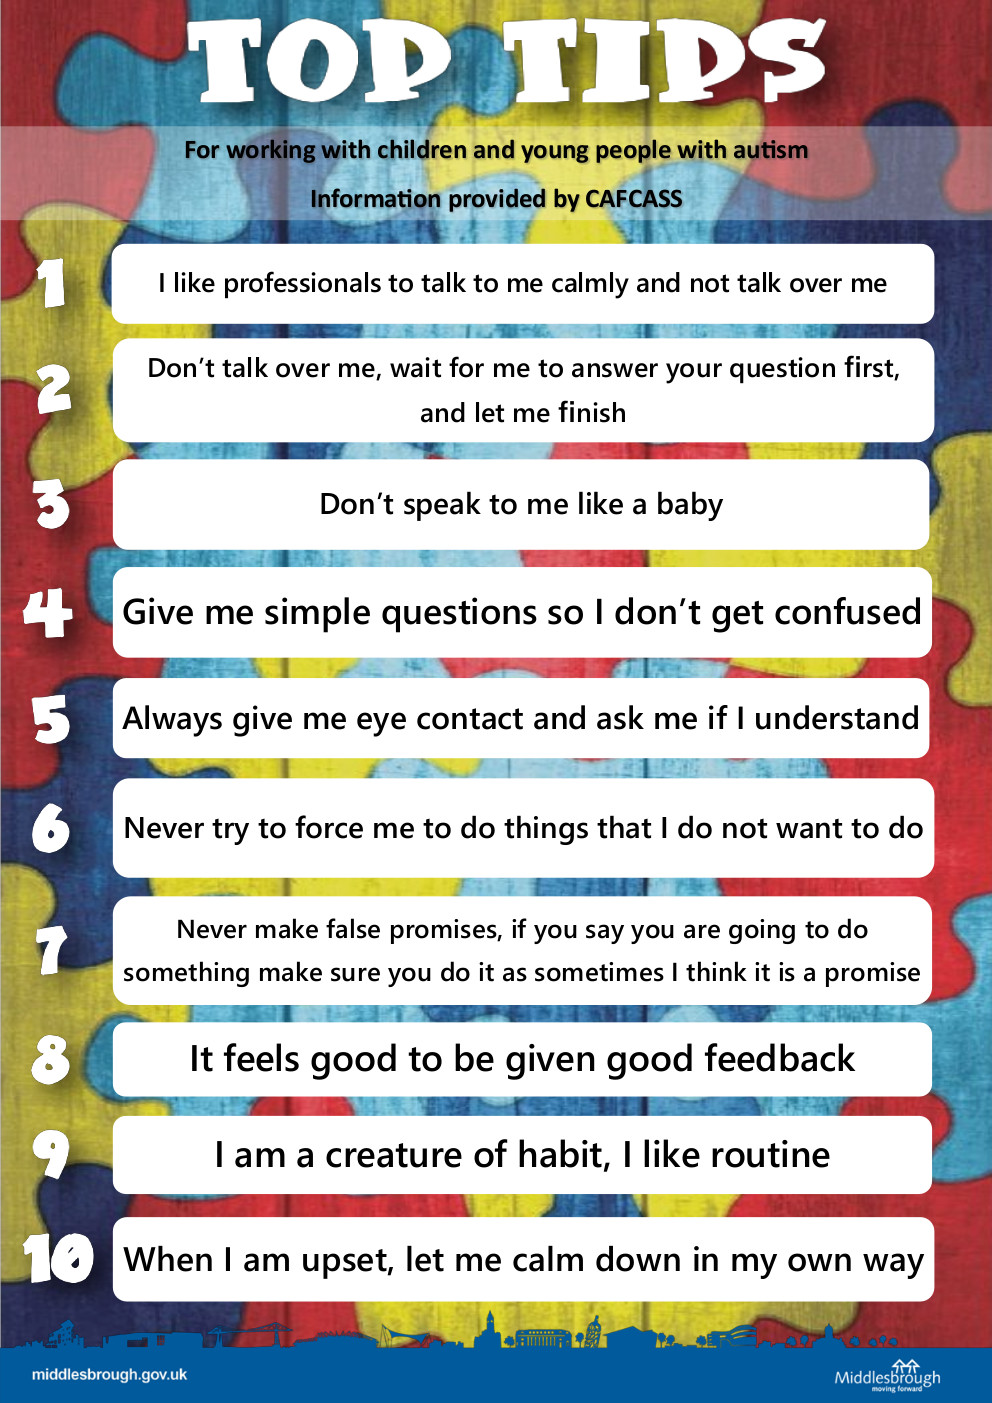 Preview of the poster 'tips for working with children and young people with autism' (click to download)